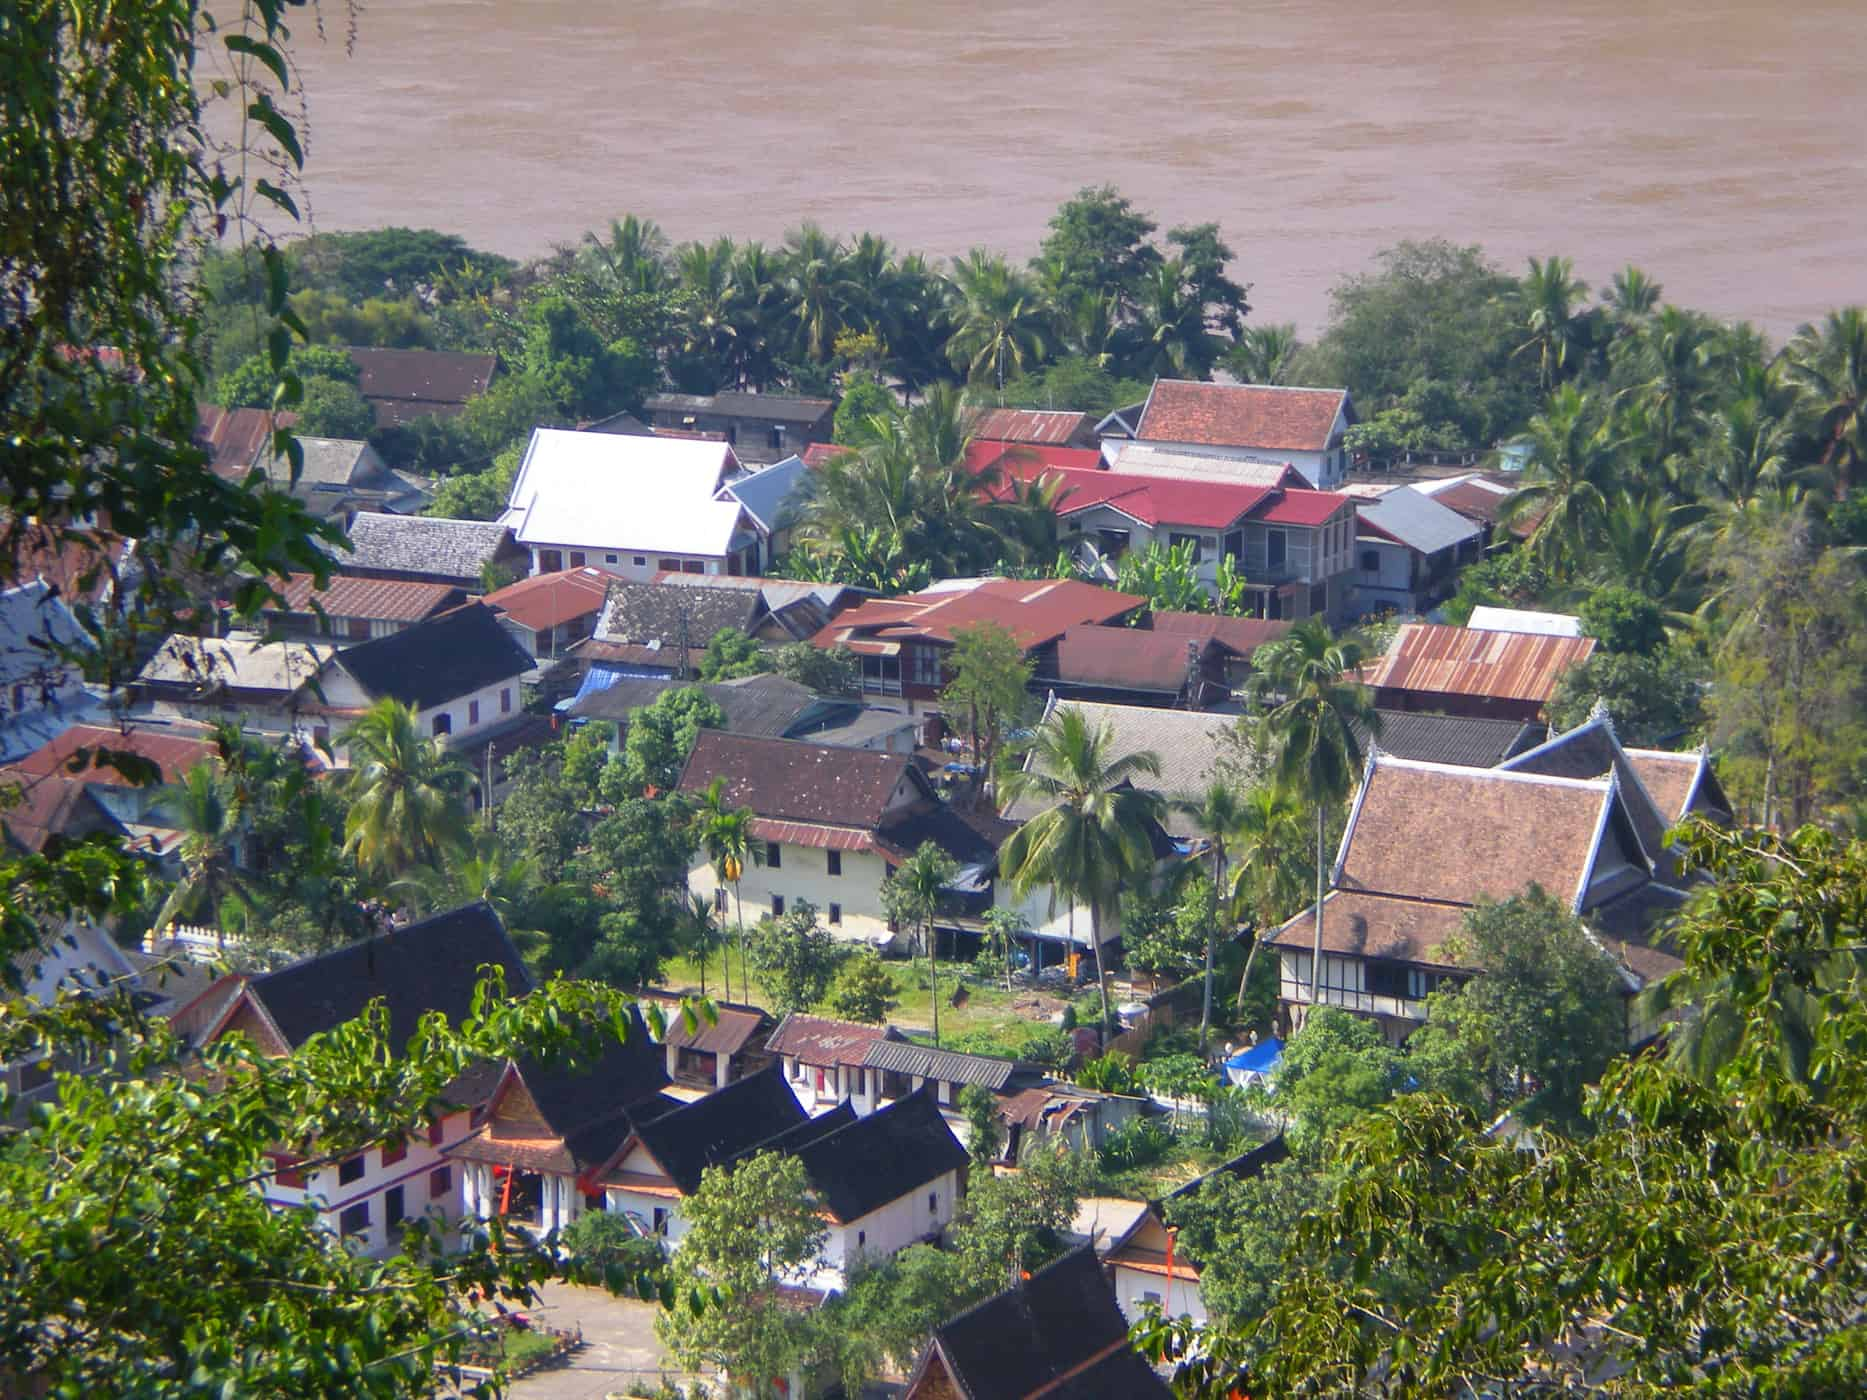 Aerial views of Luang Prabang, Laos.